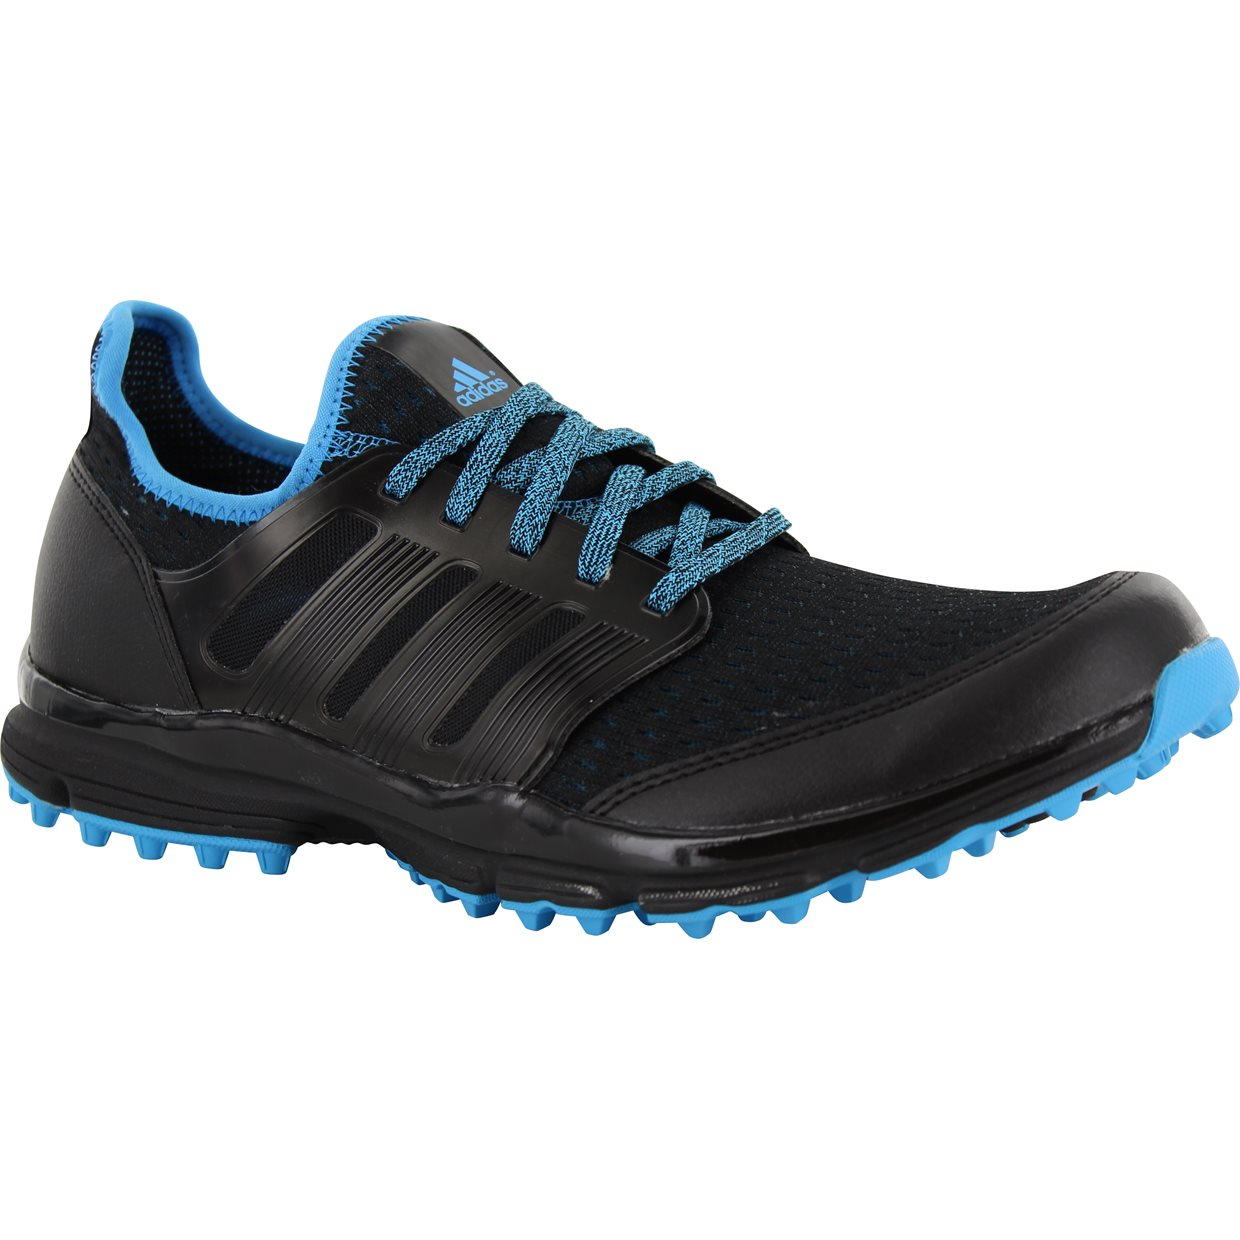 adidas climacool spikeless shoes at globalgolfcom